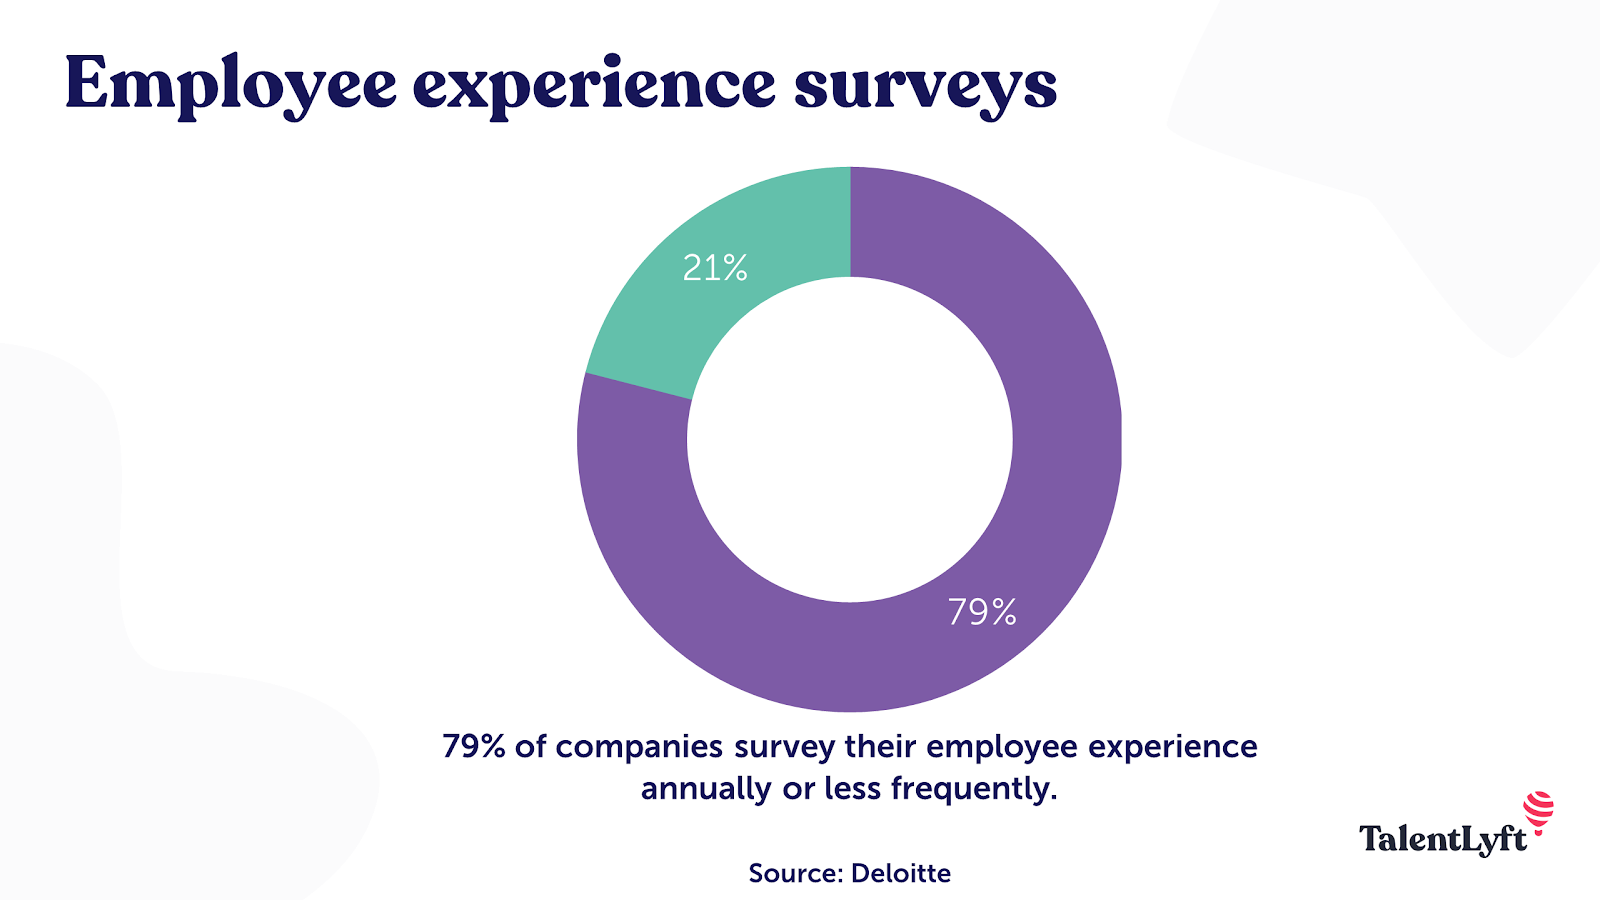 Employee experience survey